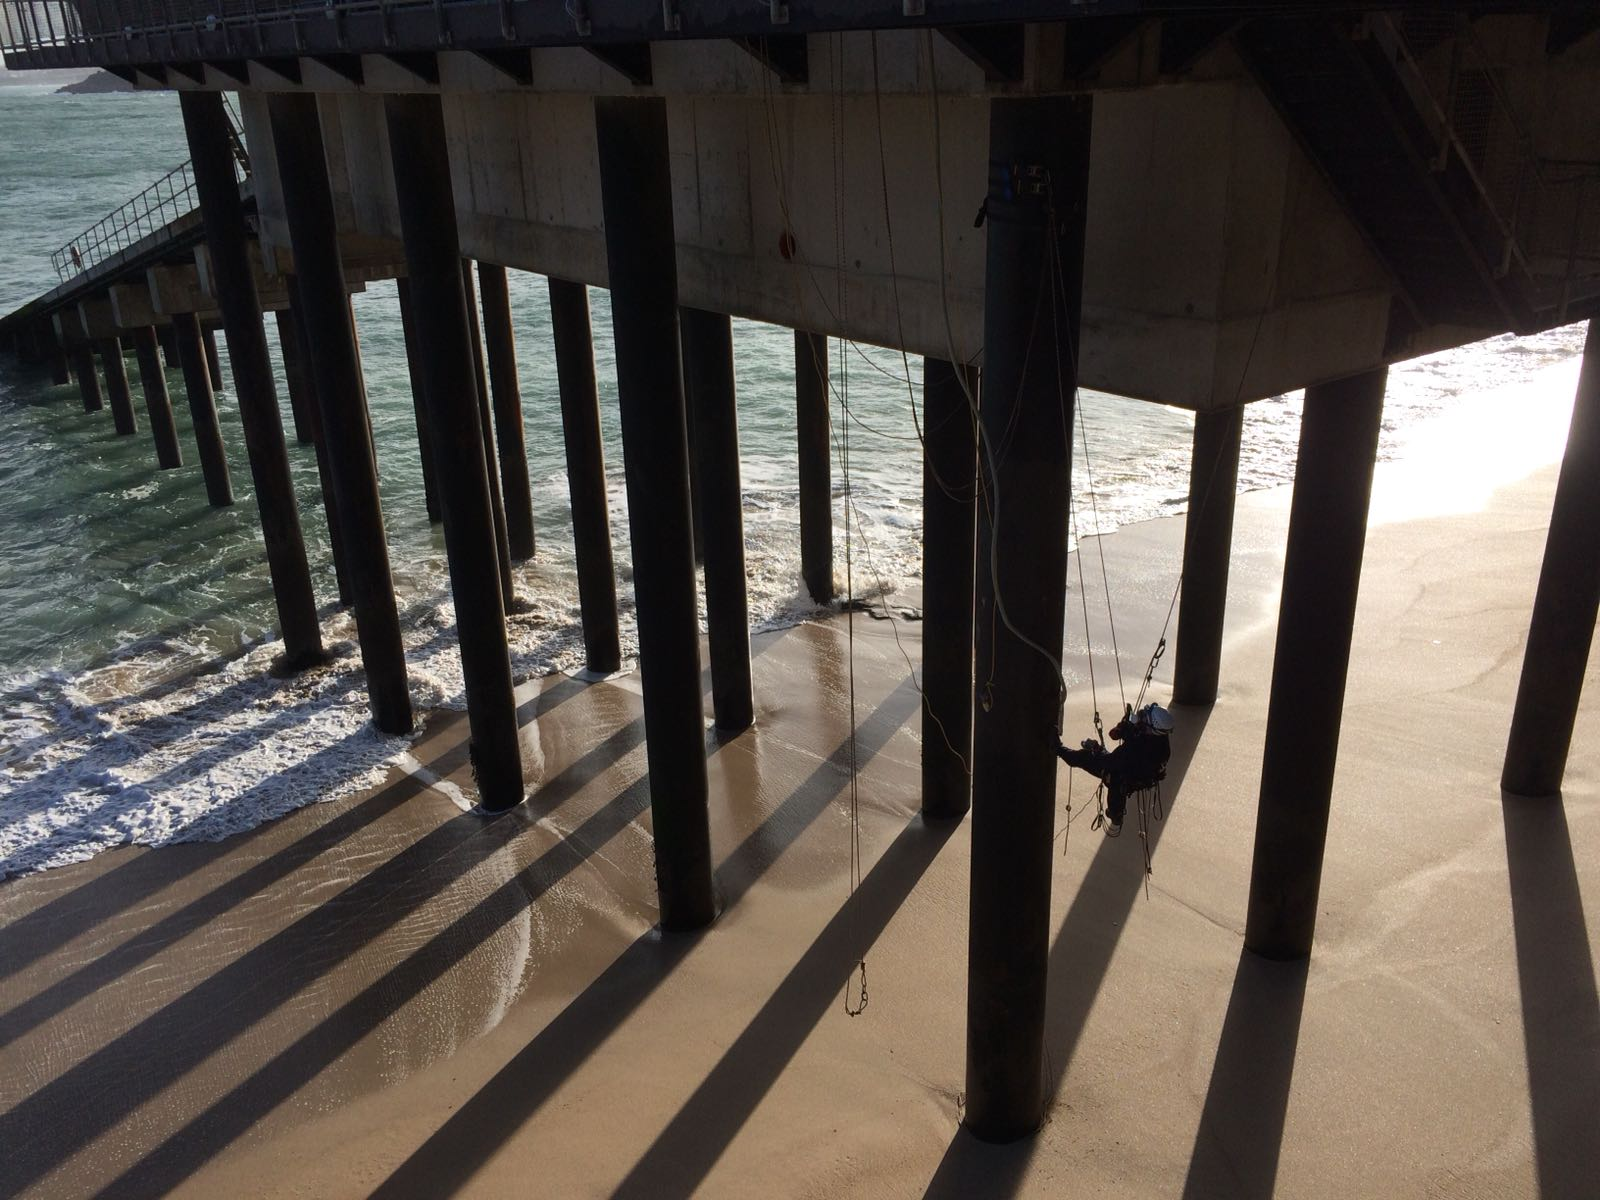 Abseiling from pillars on lifeboat station